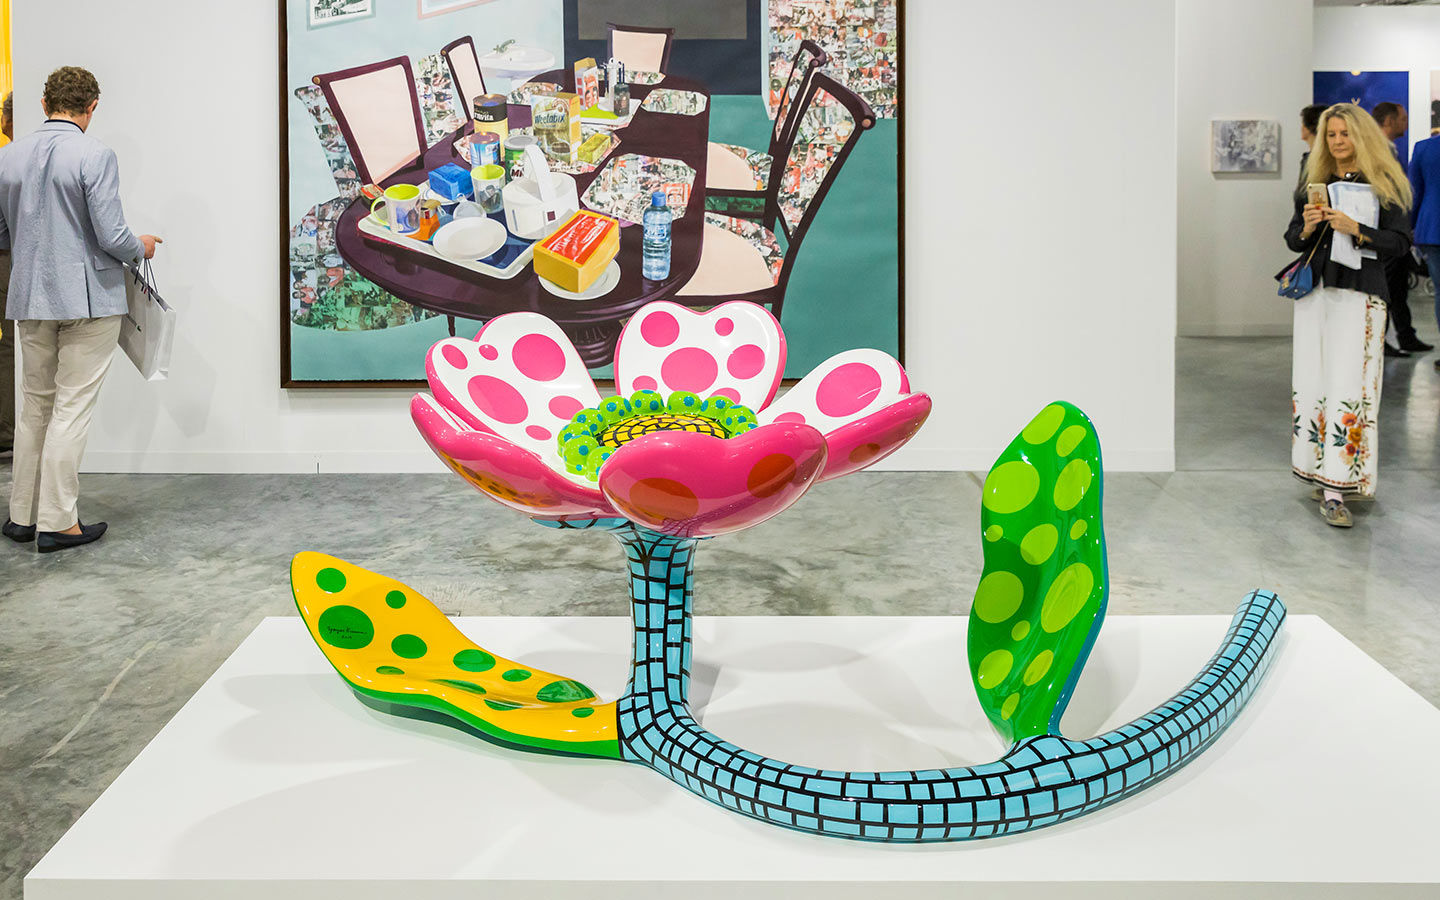 Flowers by Victoria Miro Gallery